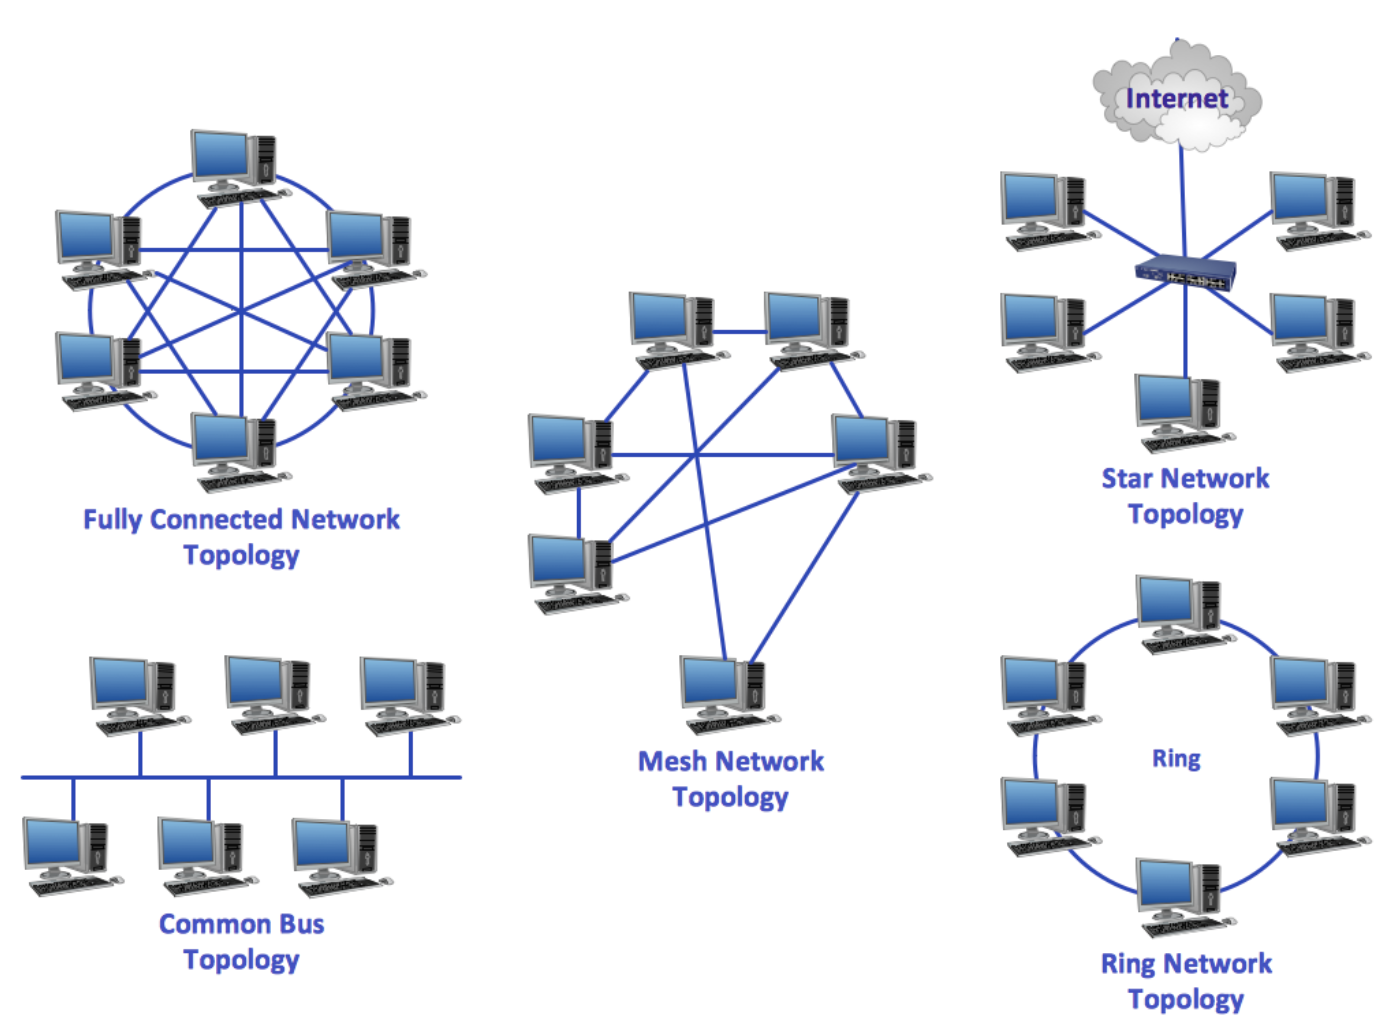 The Various Types of Network Topologies